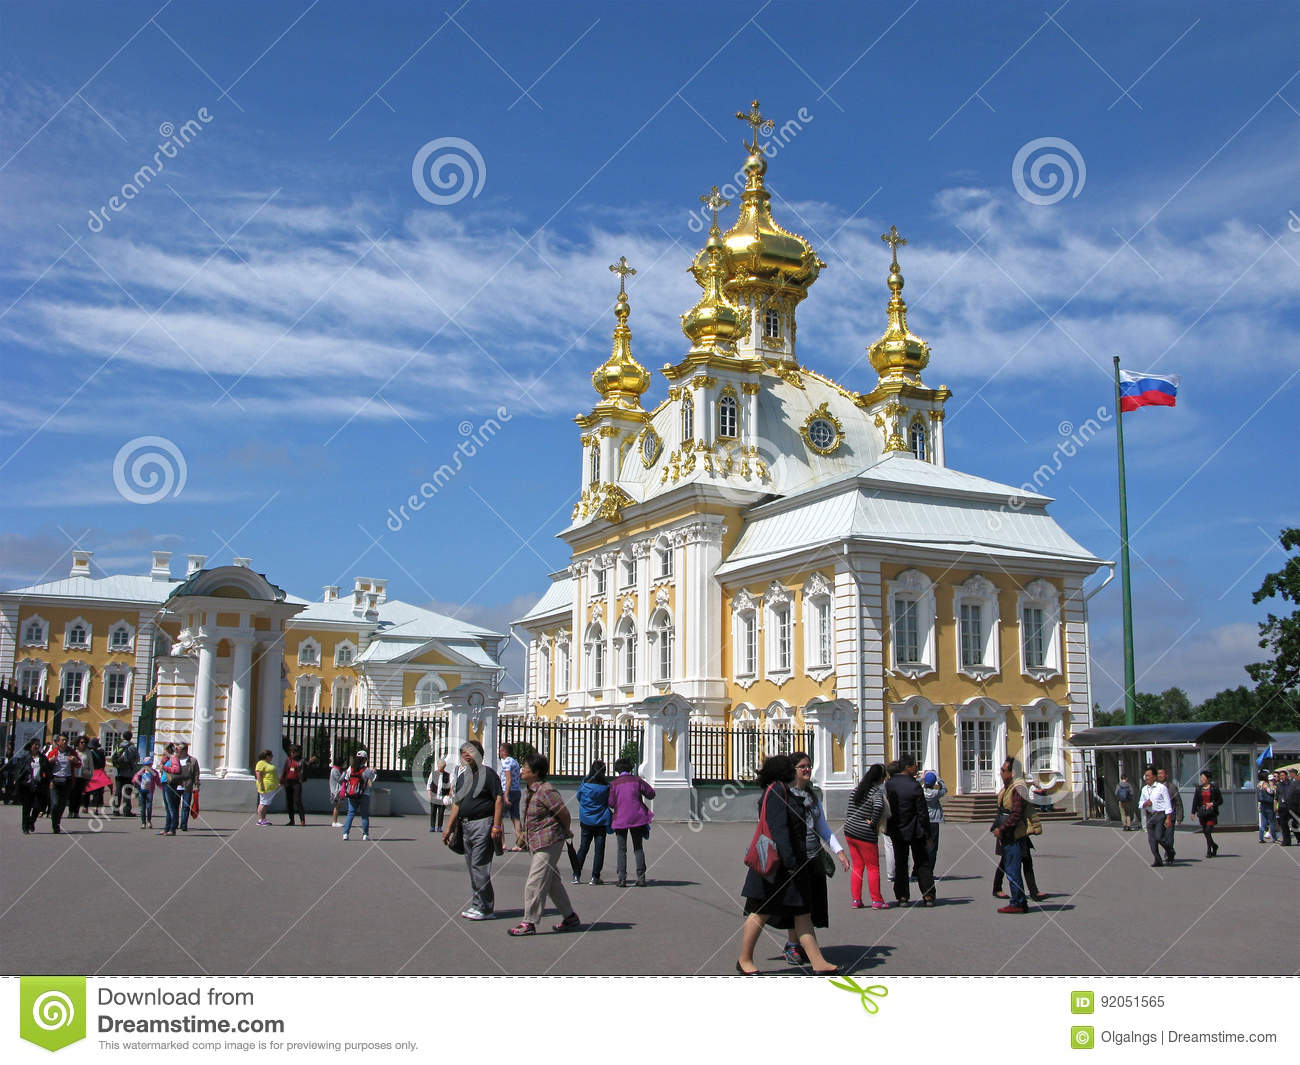 Russia. Tourists in Peterhof, church of Peter and Paul.